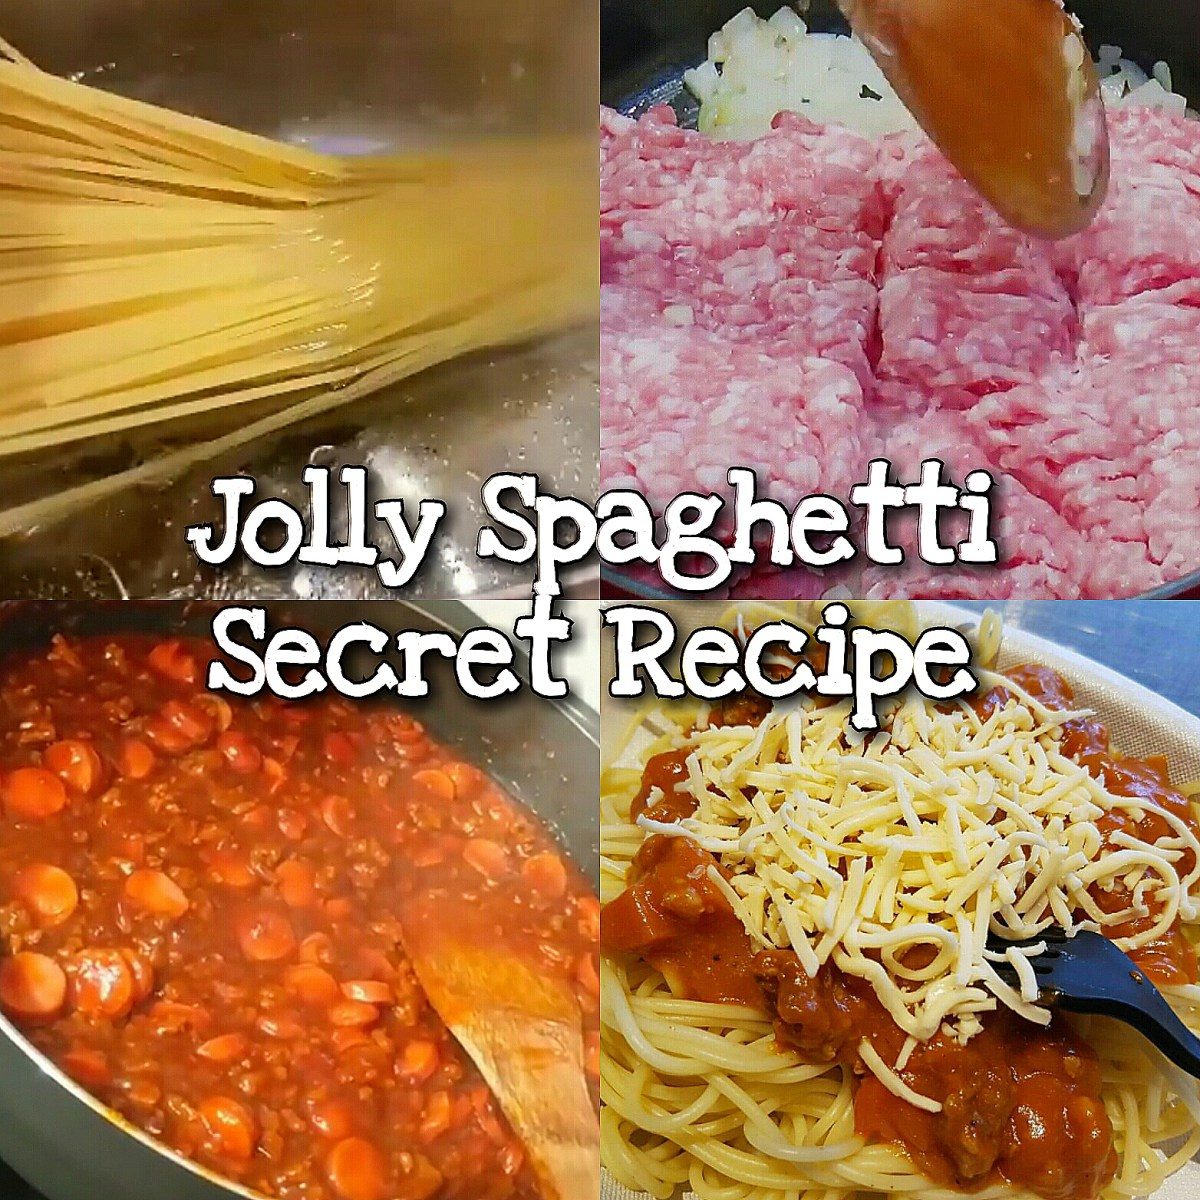 Jolly Spaghetti Secret Recipe